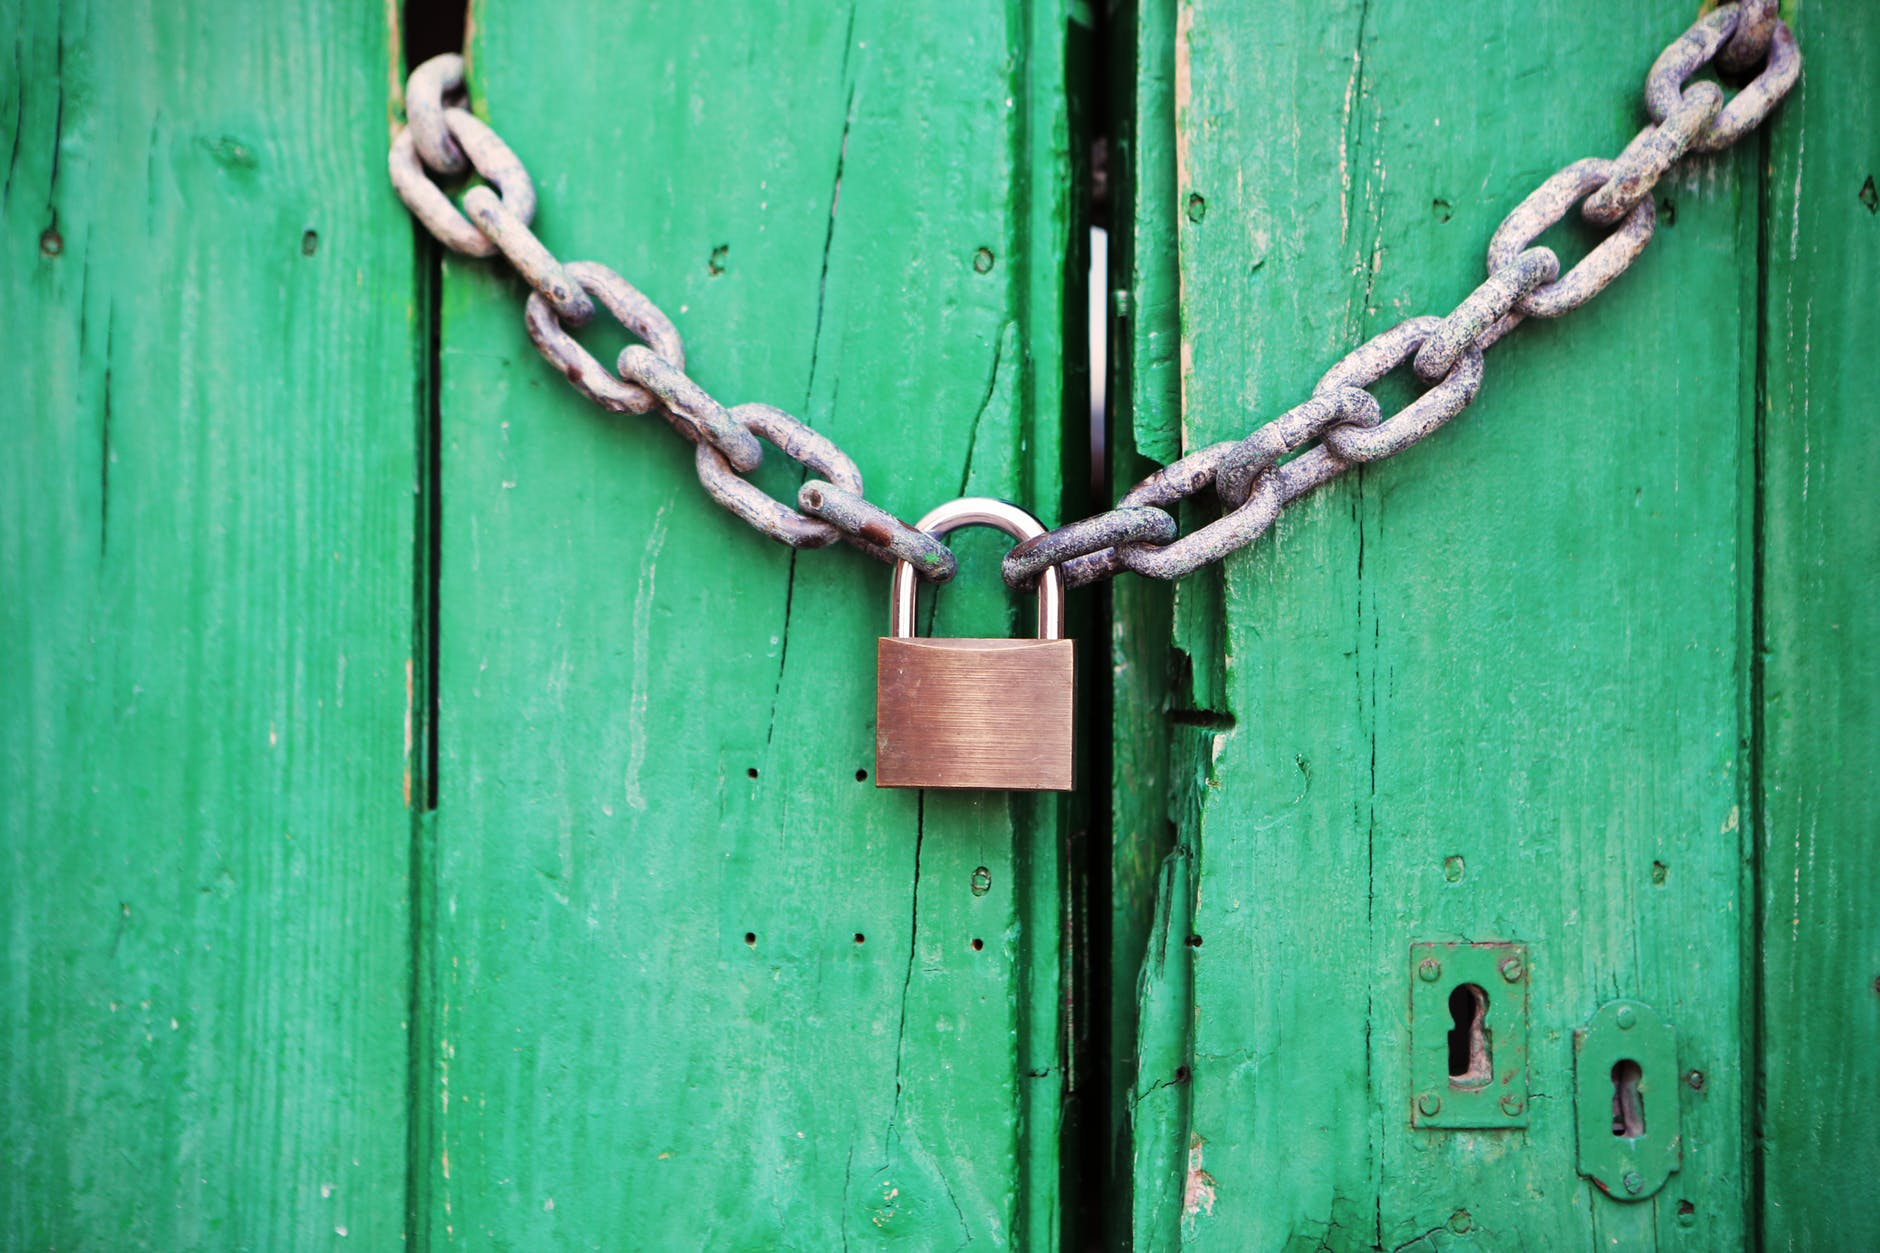 a chain and padlock holding green doors locked